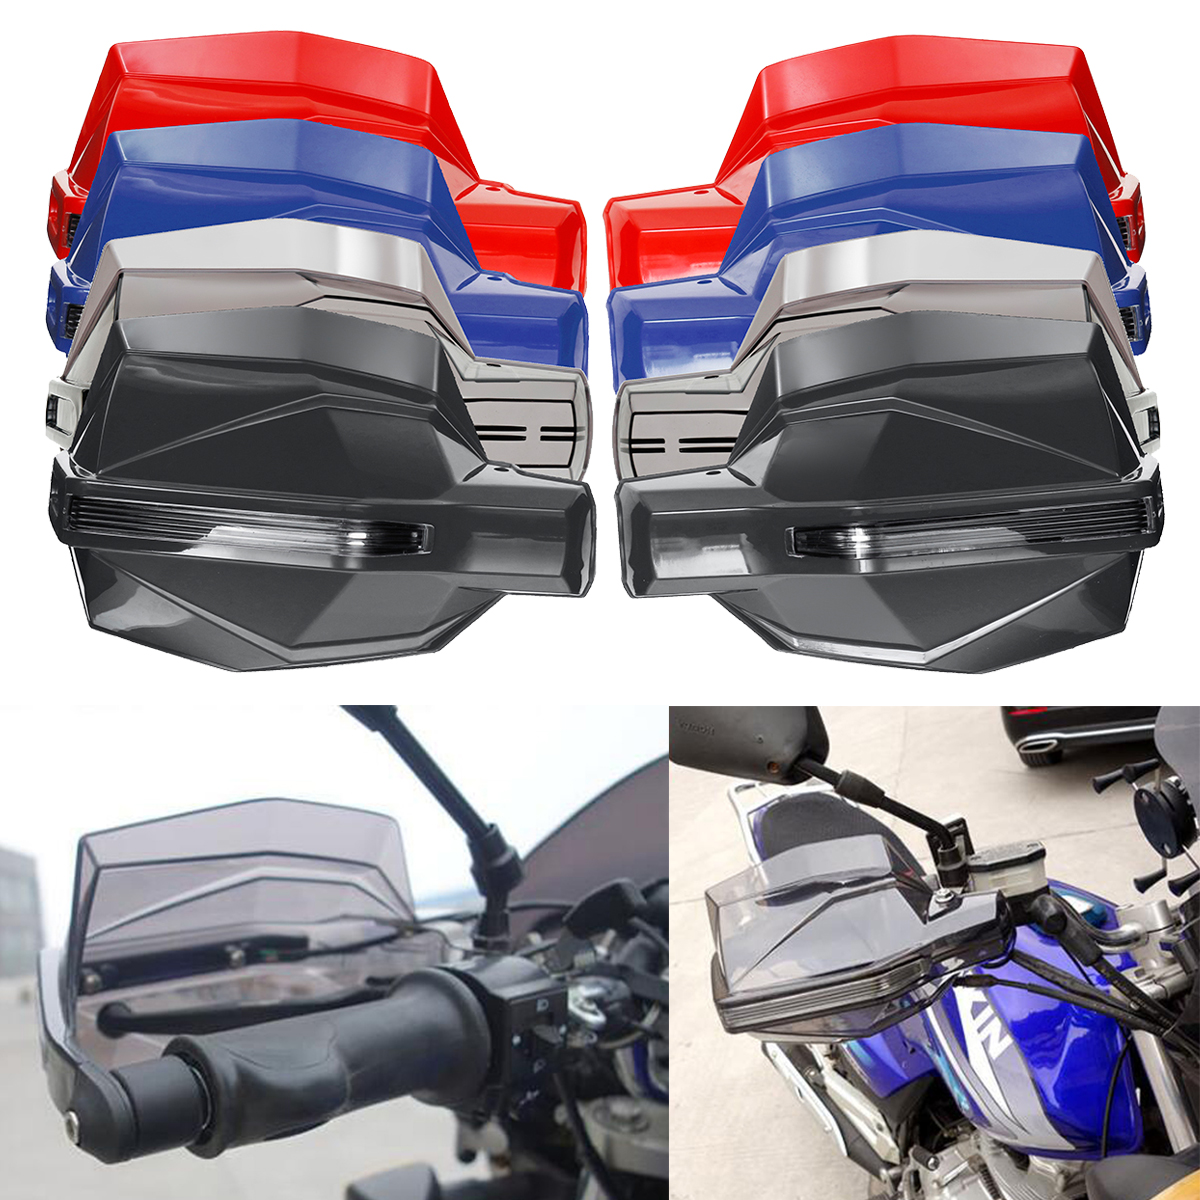 Motorcycle Motocross Enduro Dirt Bike Handguard Brush Shield Windproof Protector Universal Hand guard Motorbike Protective Gear black big size universal 22mm motorbike hand guard dirt pit bike hand protect parts moto falling protection motorcycle handguard